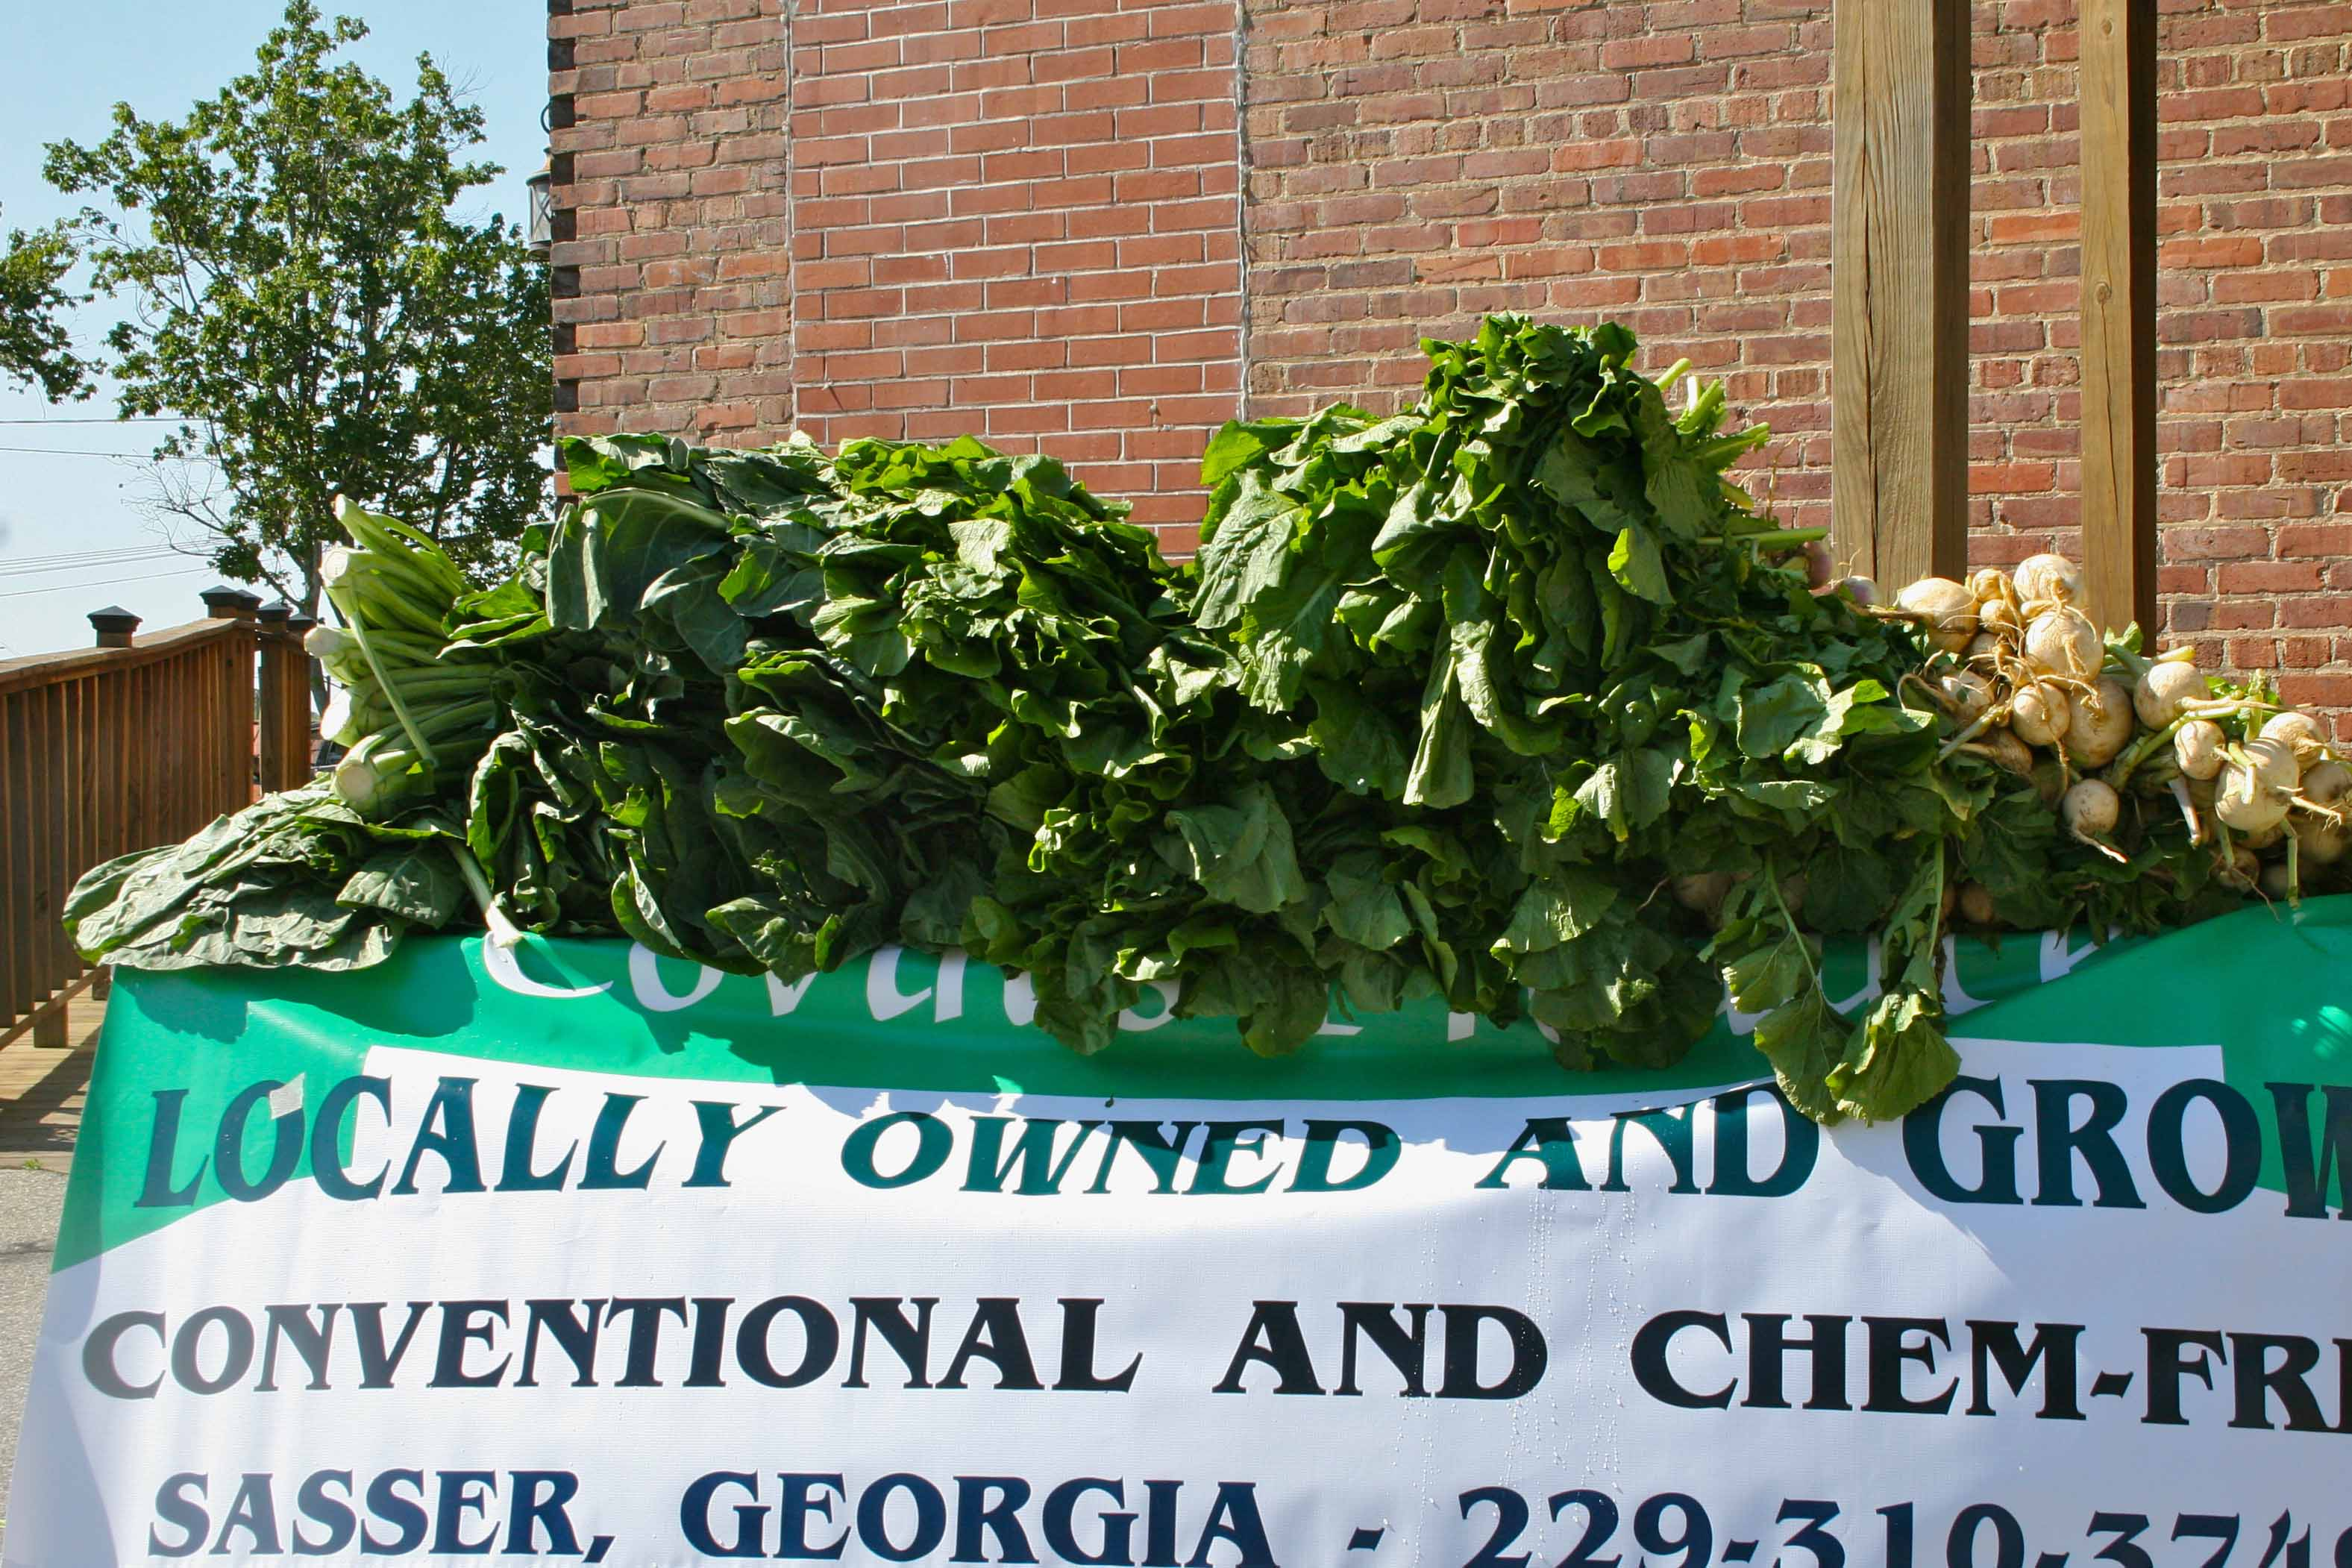 A market stand selling greens at the downtown farmers market in Tifton, Ga.